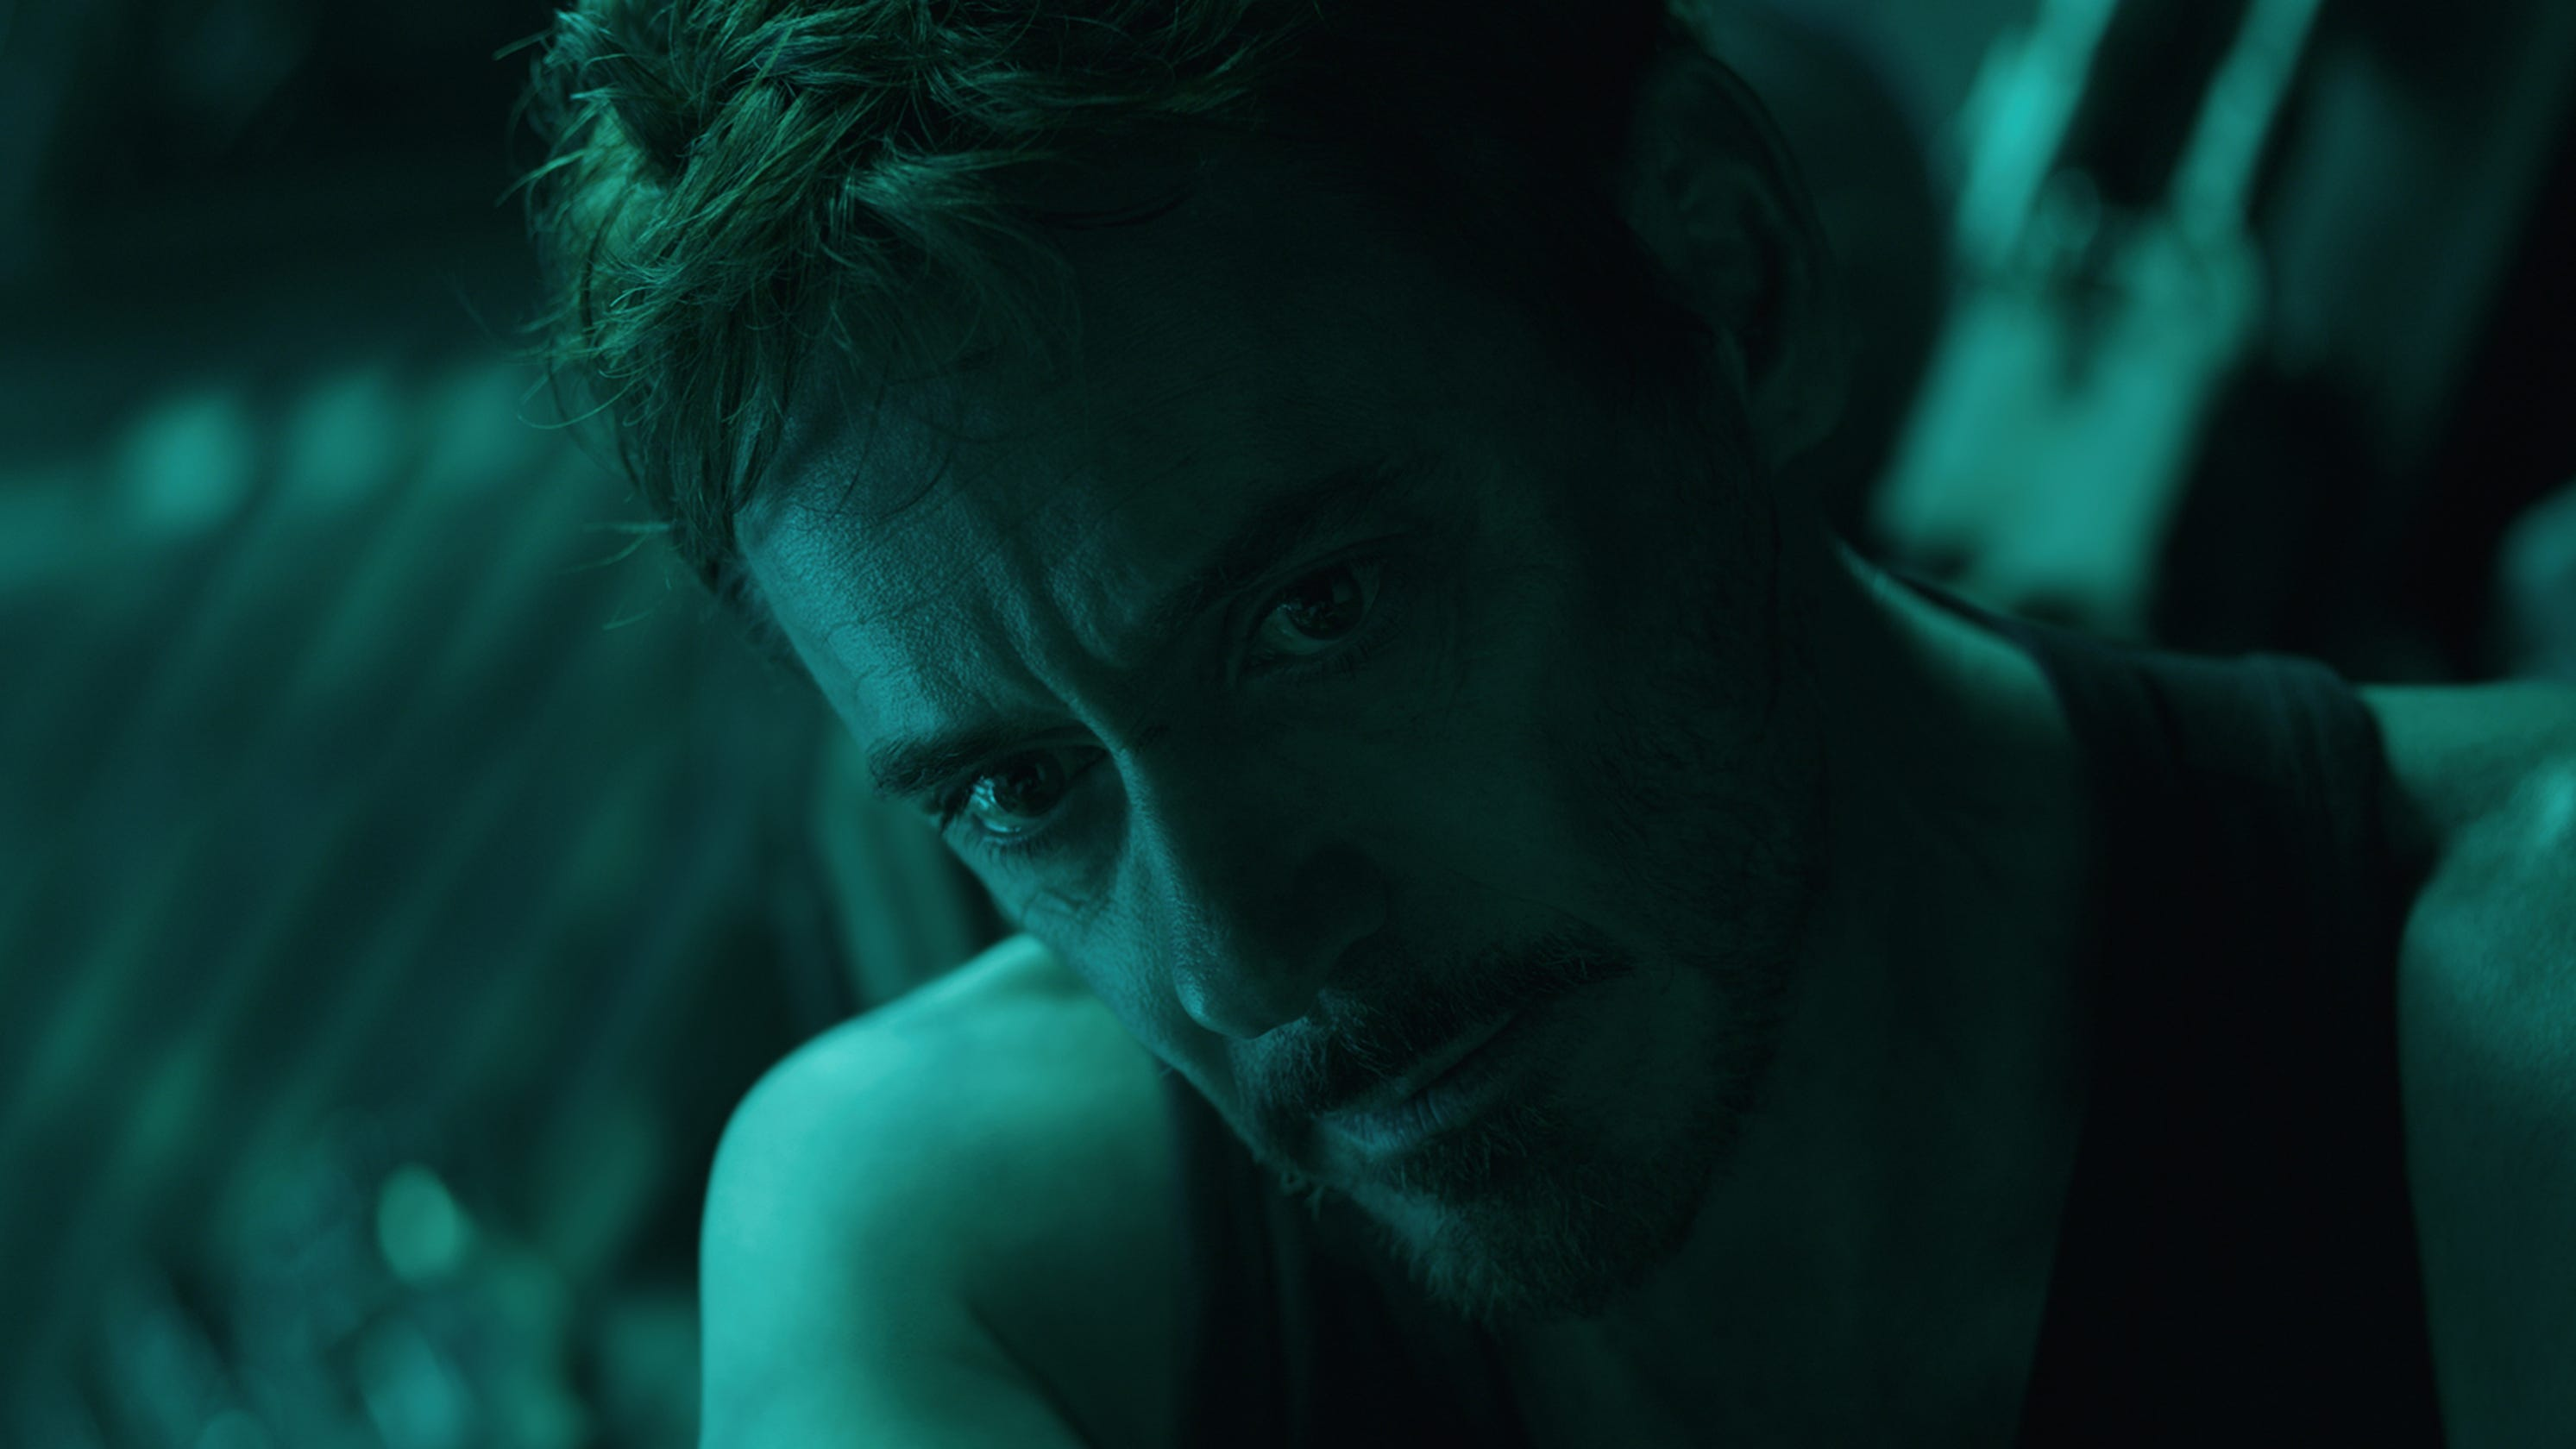 Avengers: Endgame' spoilers: Here's why there's no end